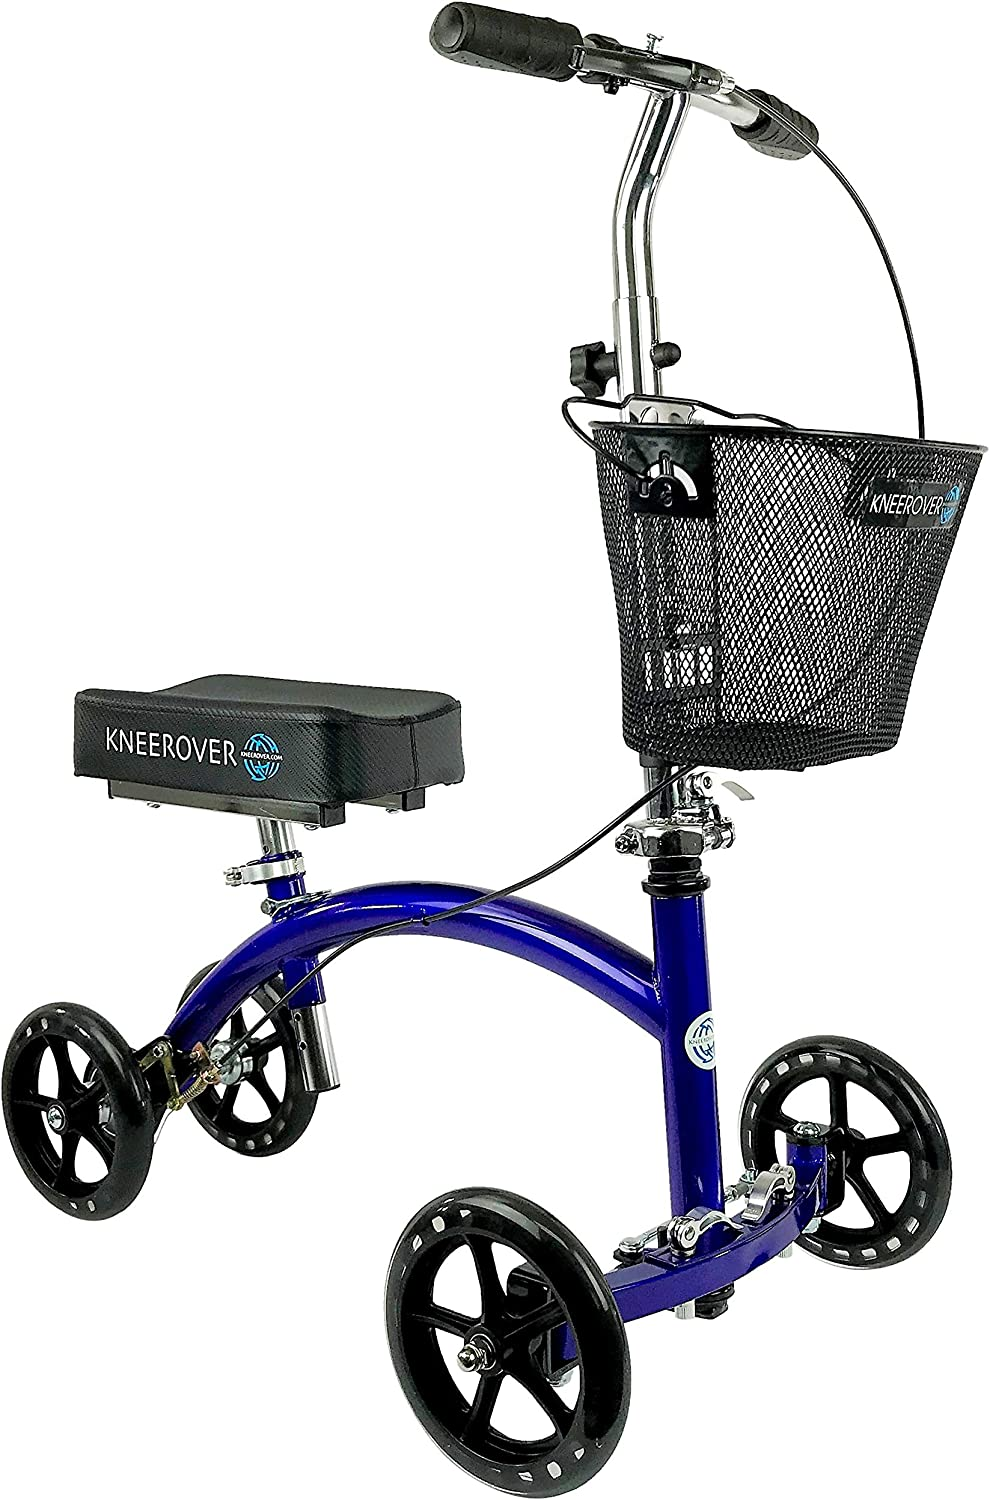 KneeRover Deluxe Steerable Knee Scooter